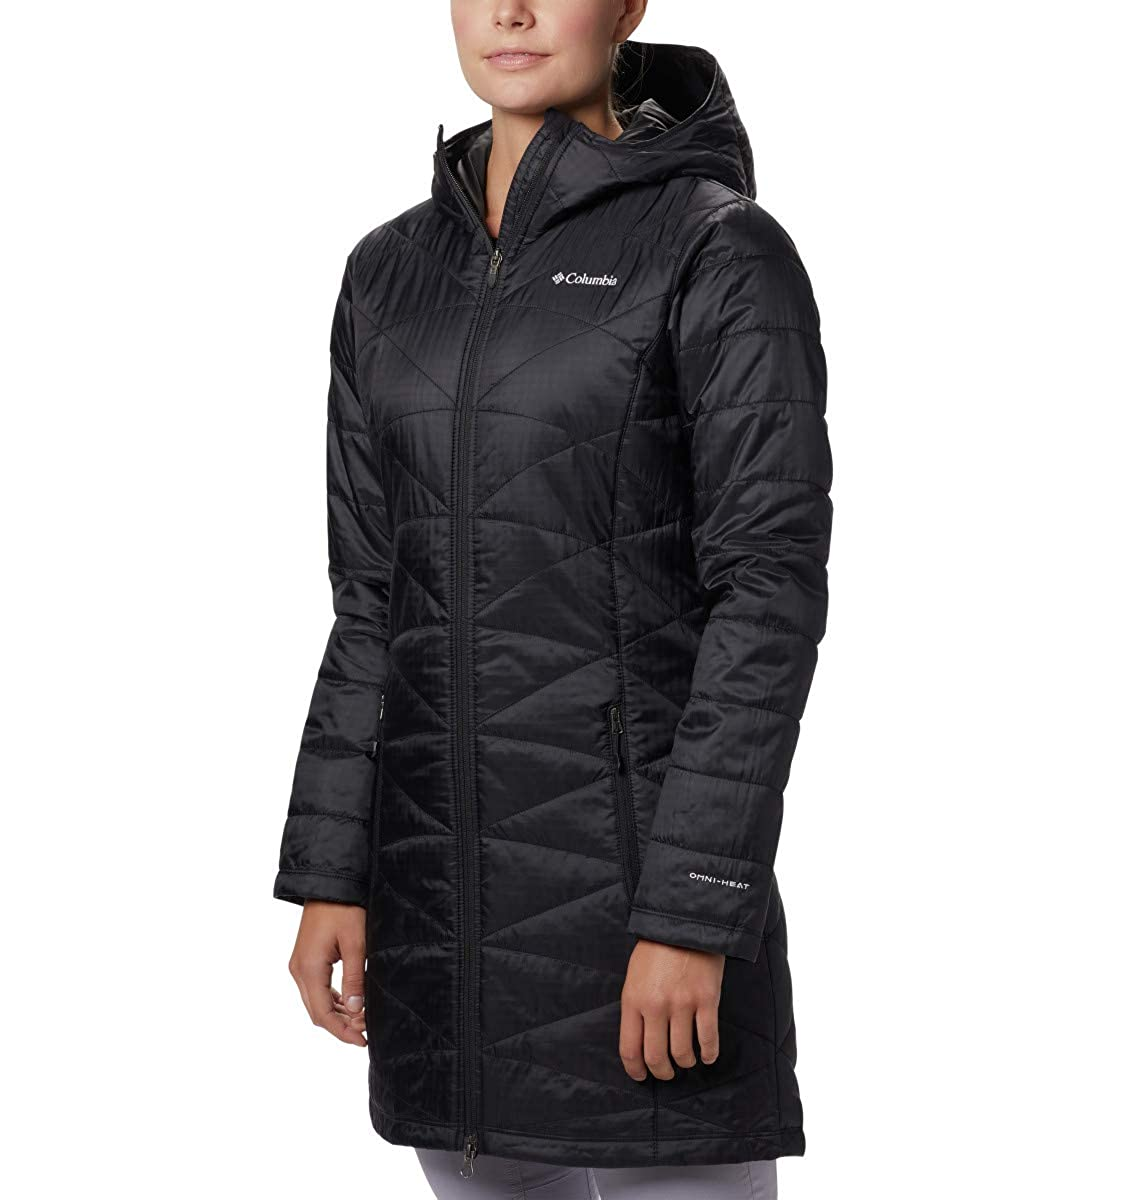 The Best Miracle Travel Lite Winter Coat